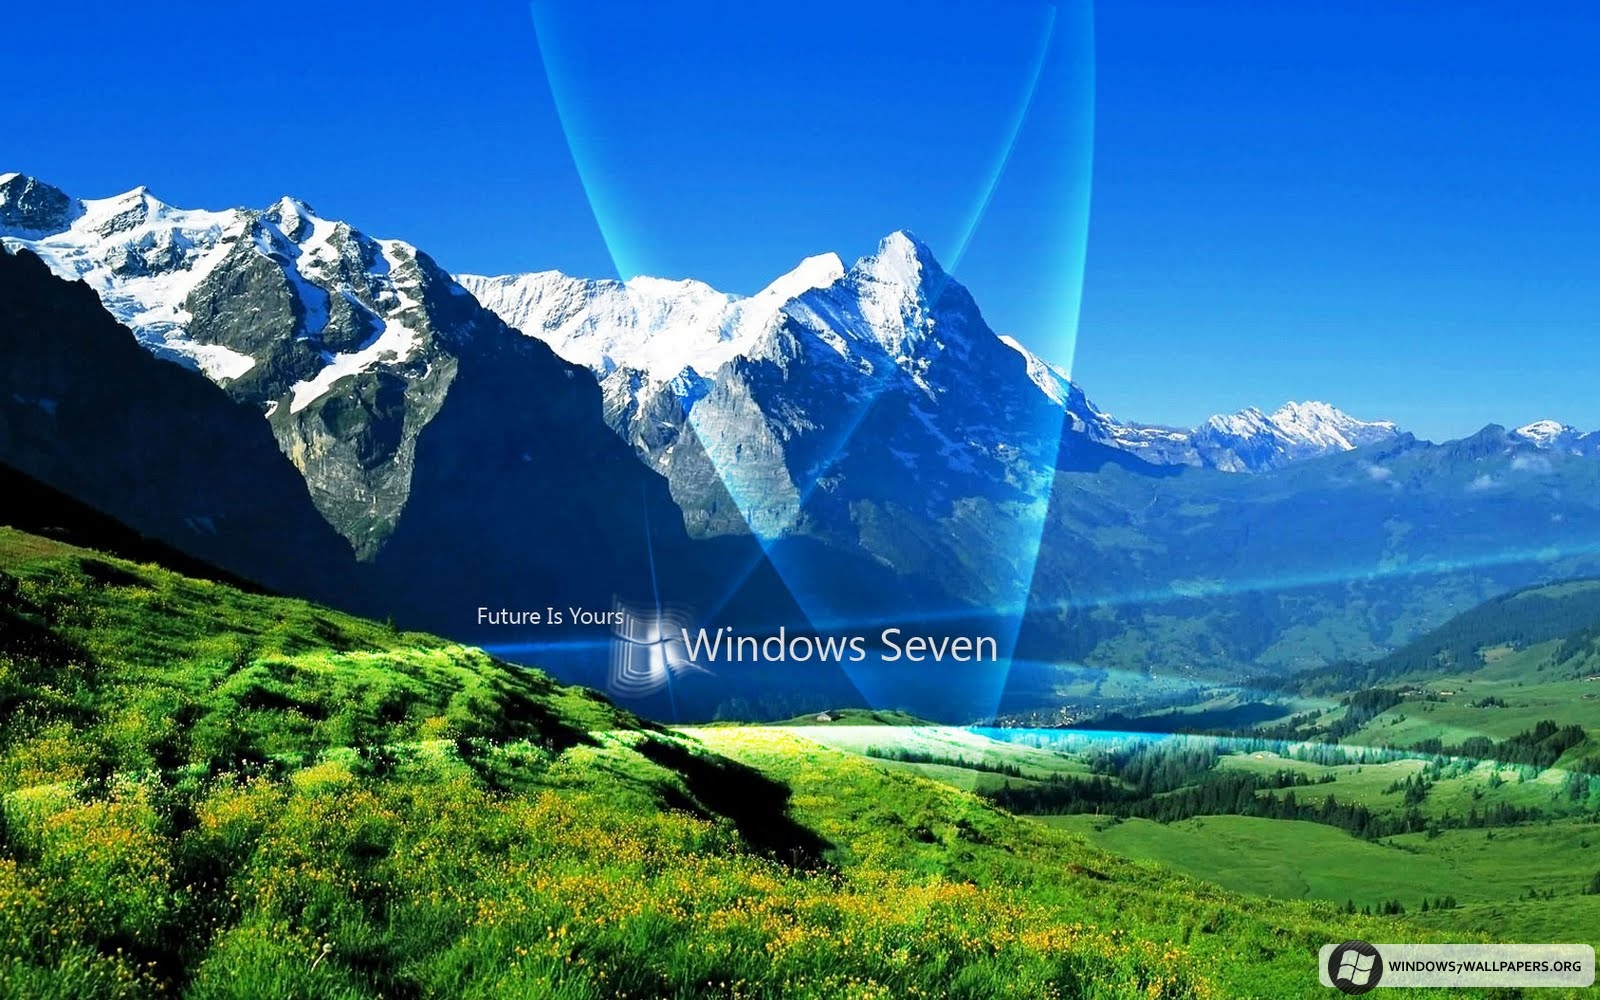 Cool Natural Windows7 Seven Desktop Wallpaper 1680x1050